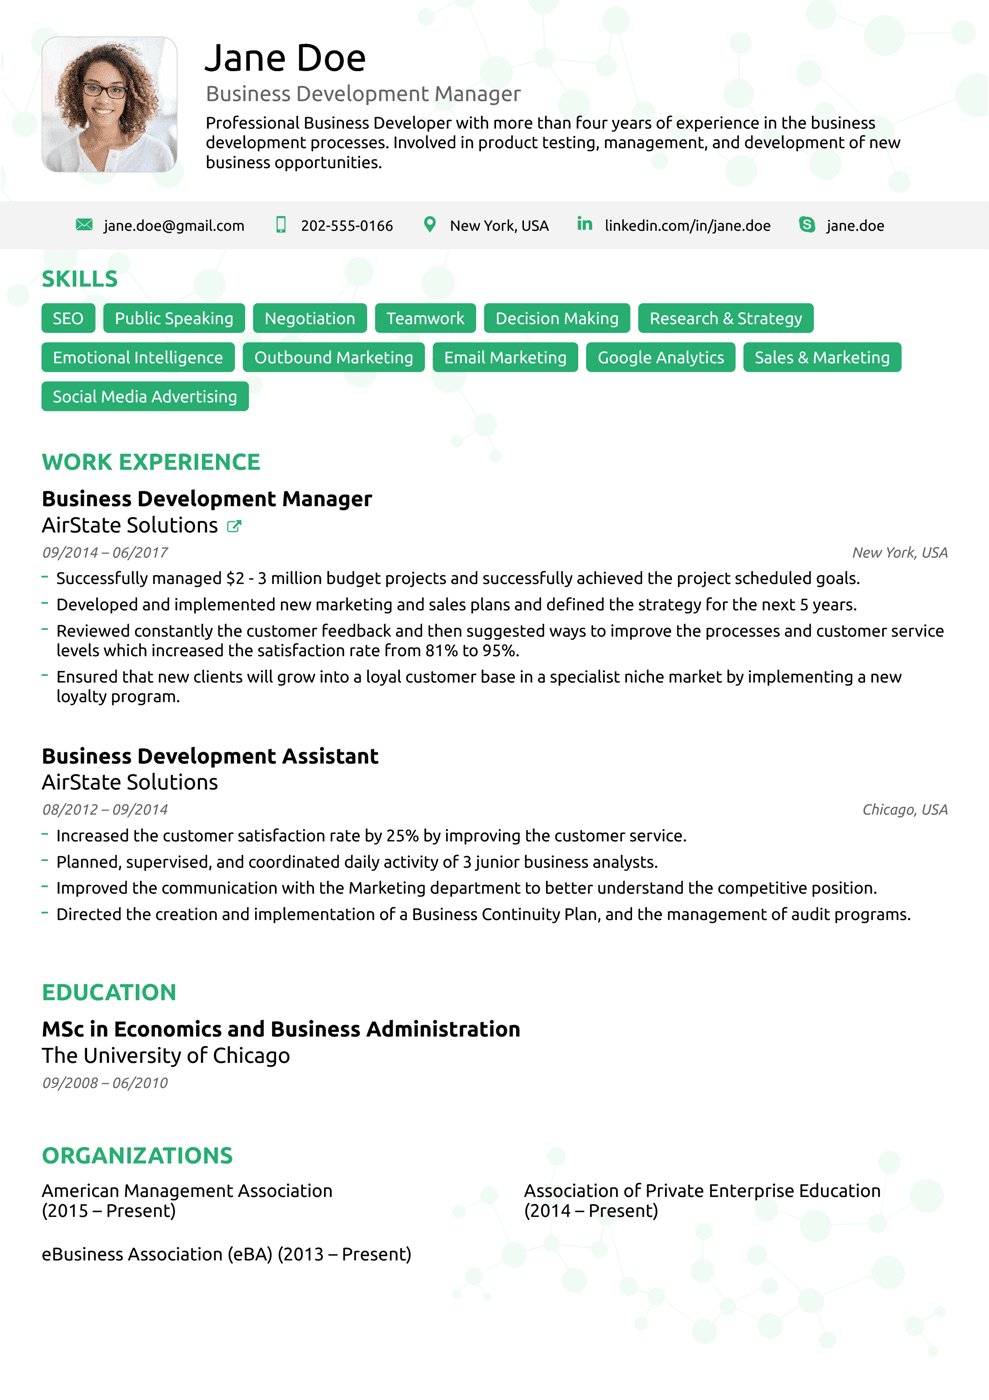 Resume Impressive 448 Professional Resume Templates As They Should Be [48]